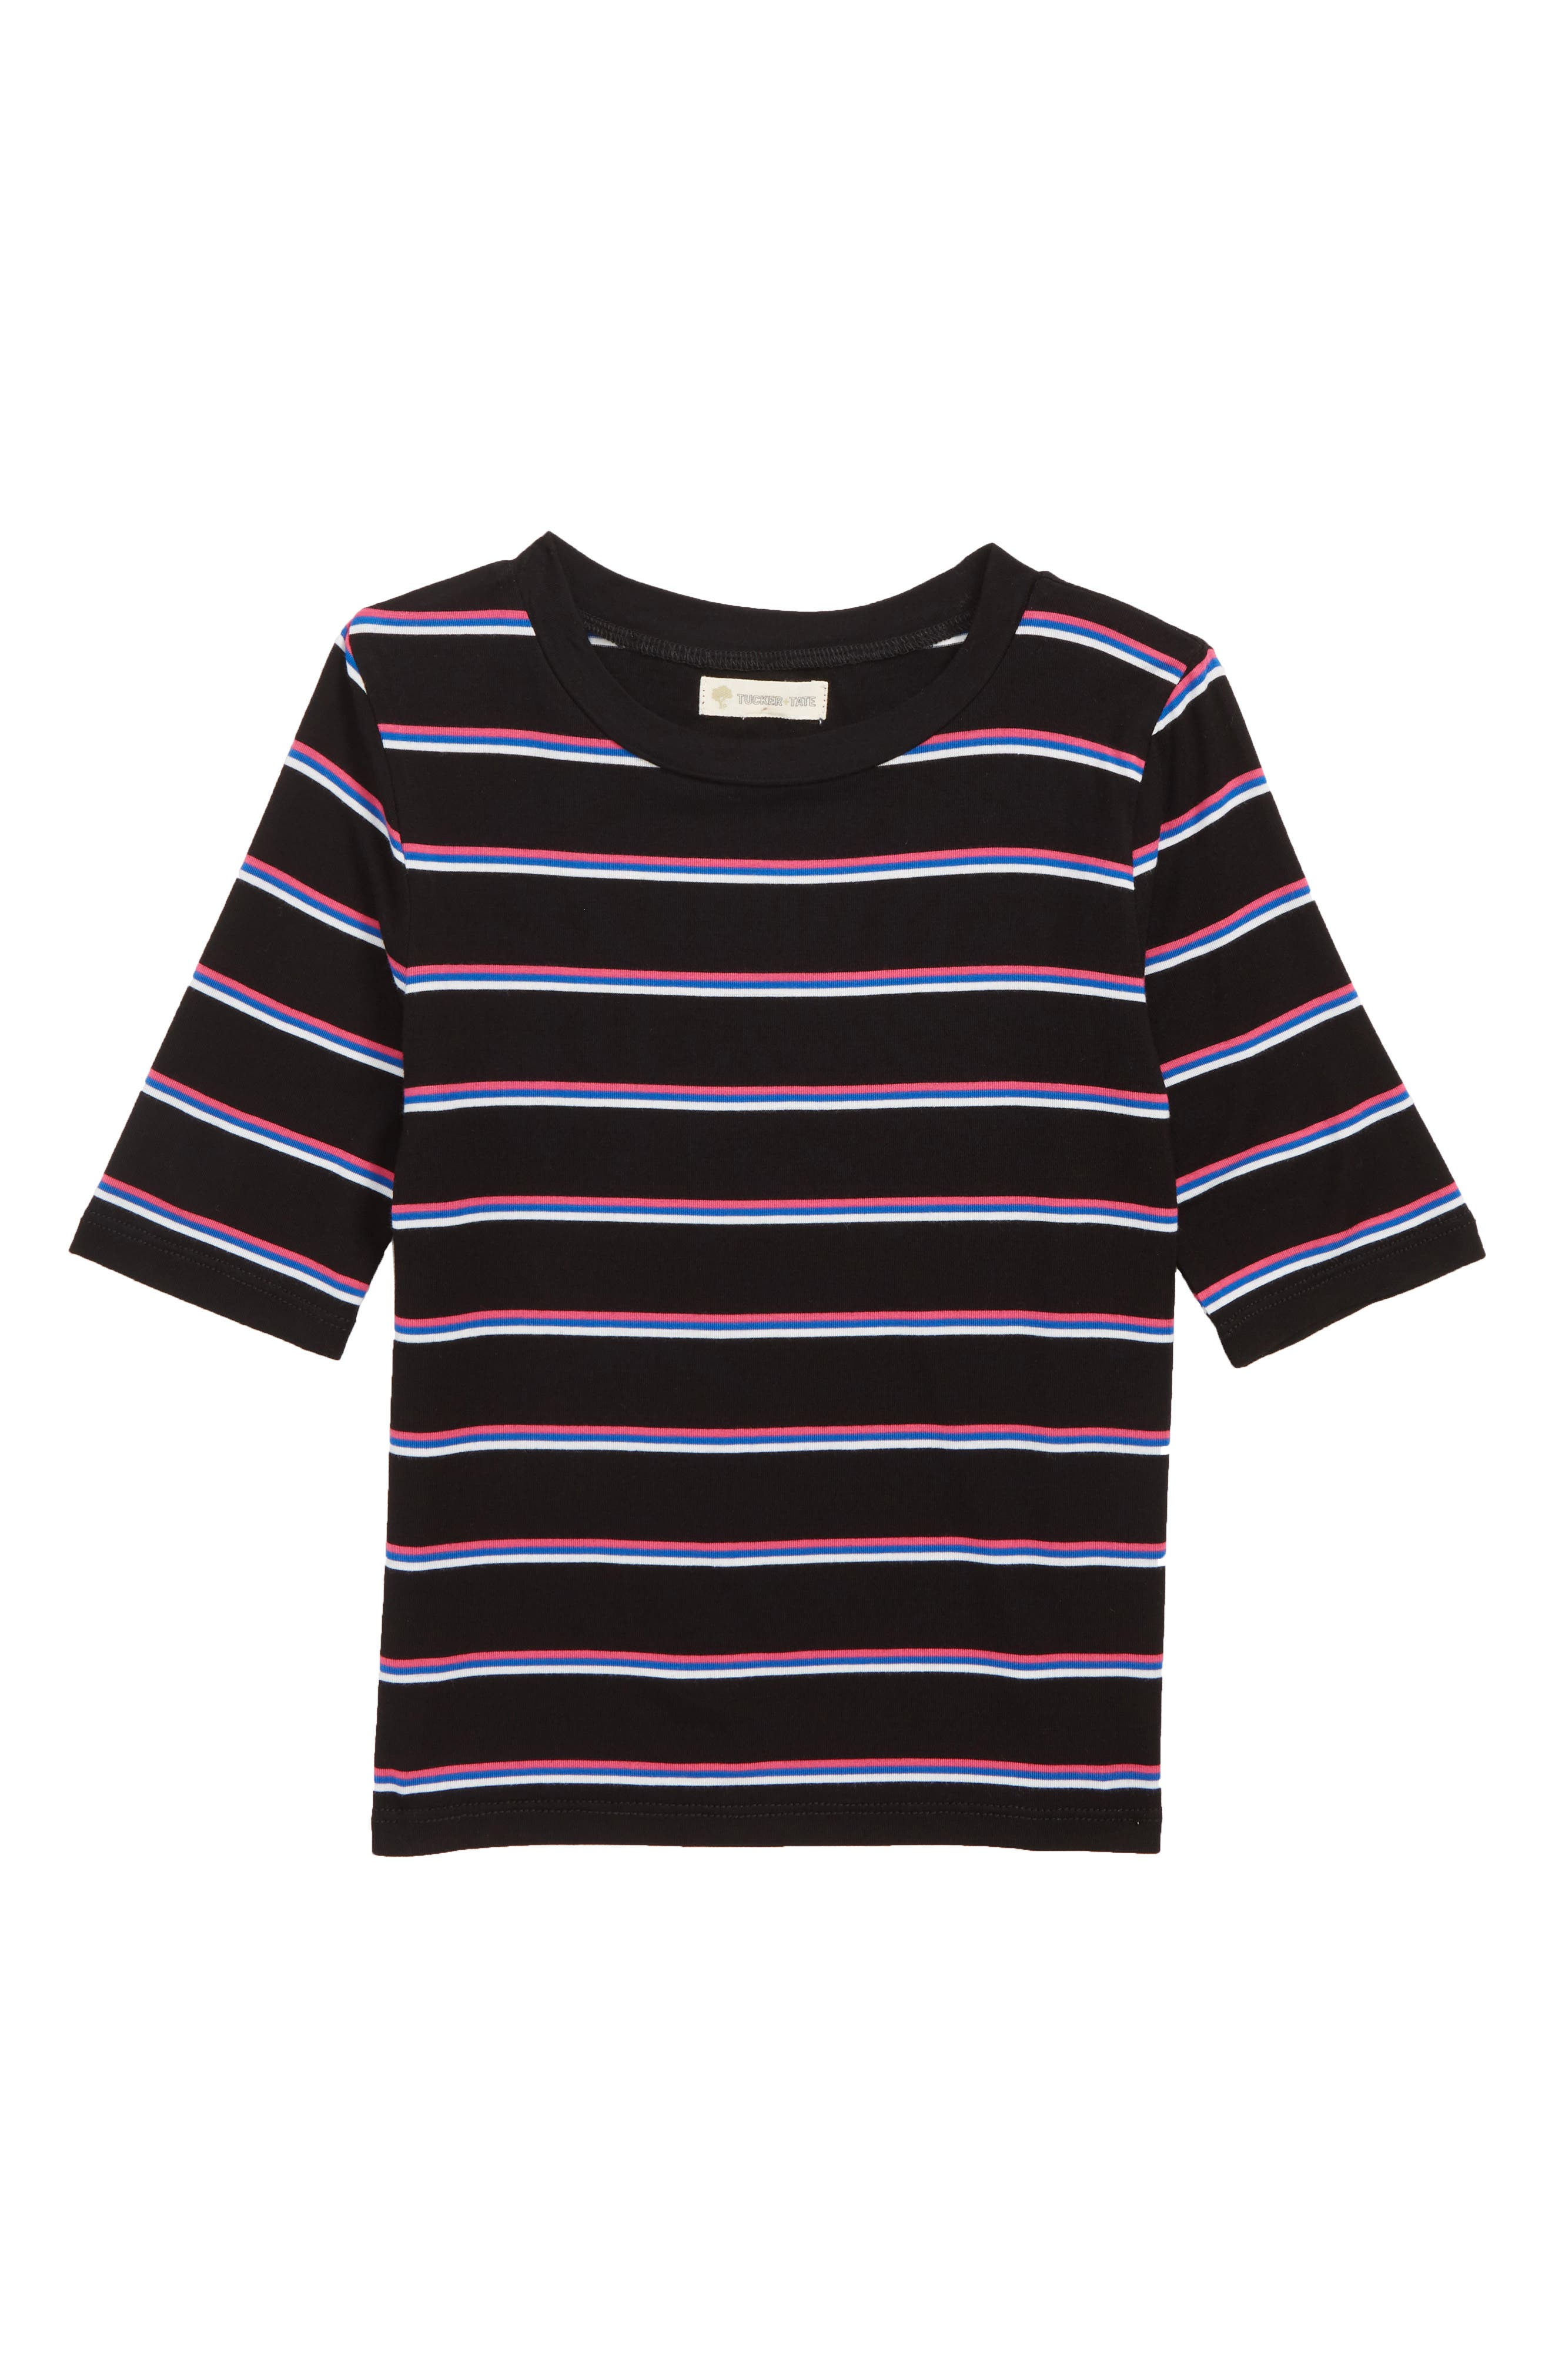 Stripe Tee,                             Main thumbnail 1, color,                             BLACK MULTI STRIPE